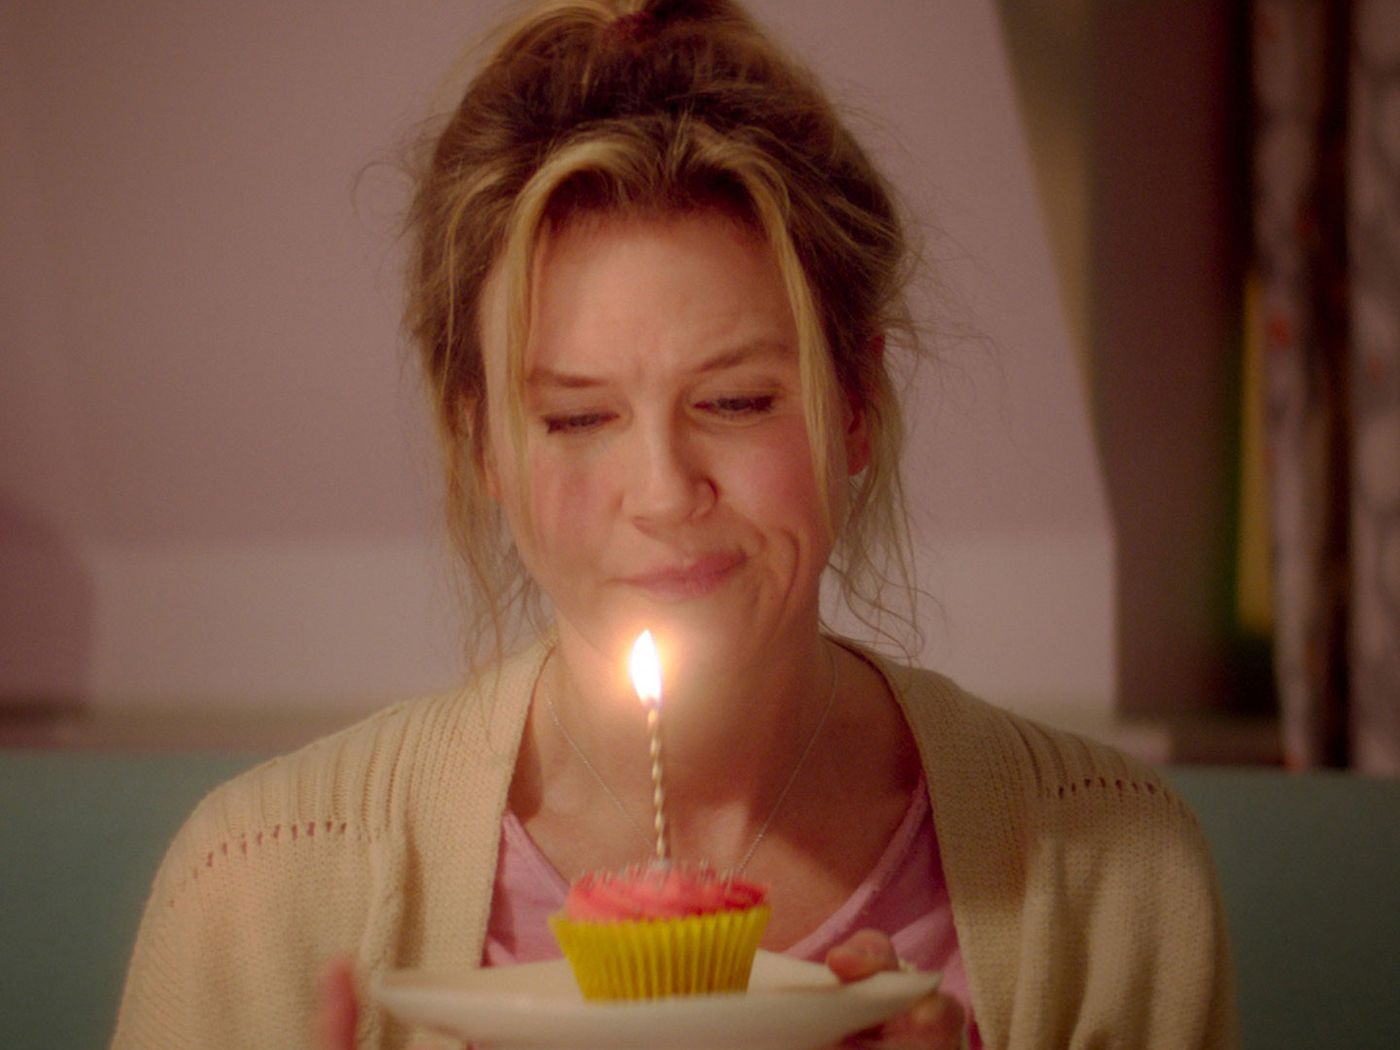 Bridget Jones's Baby chains its heroine to an outmoded